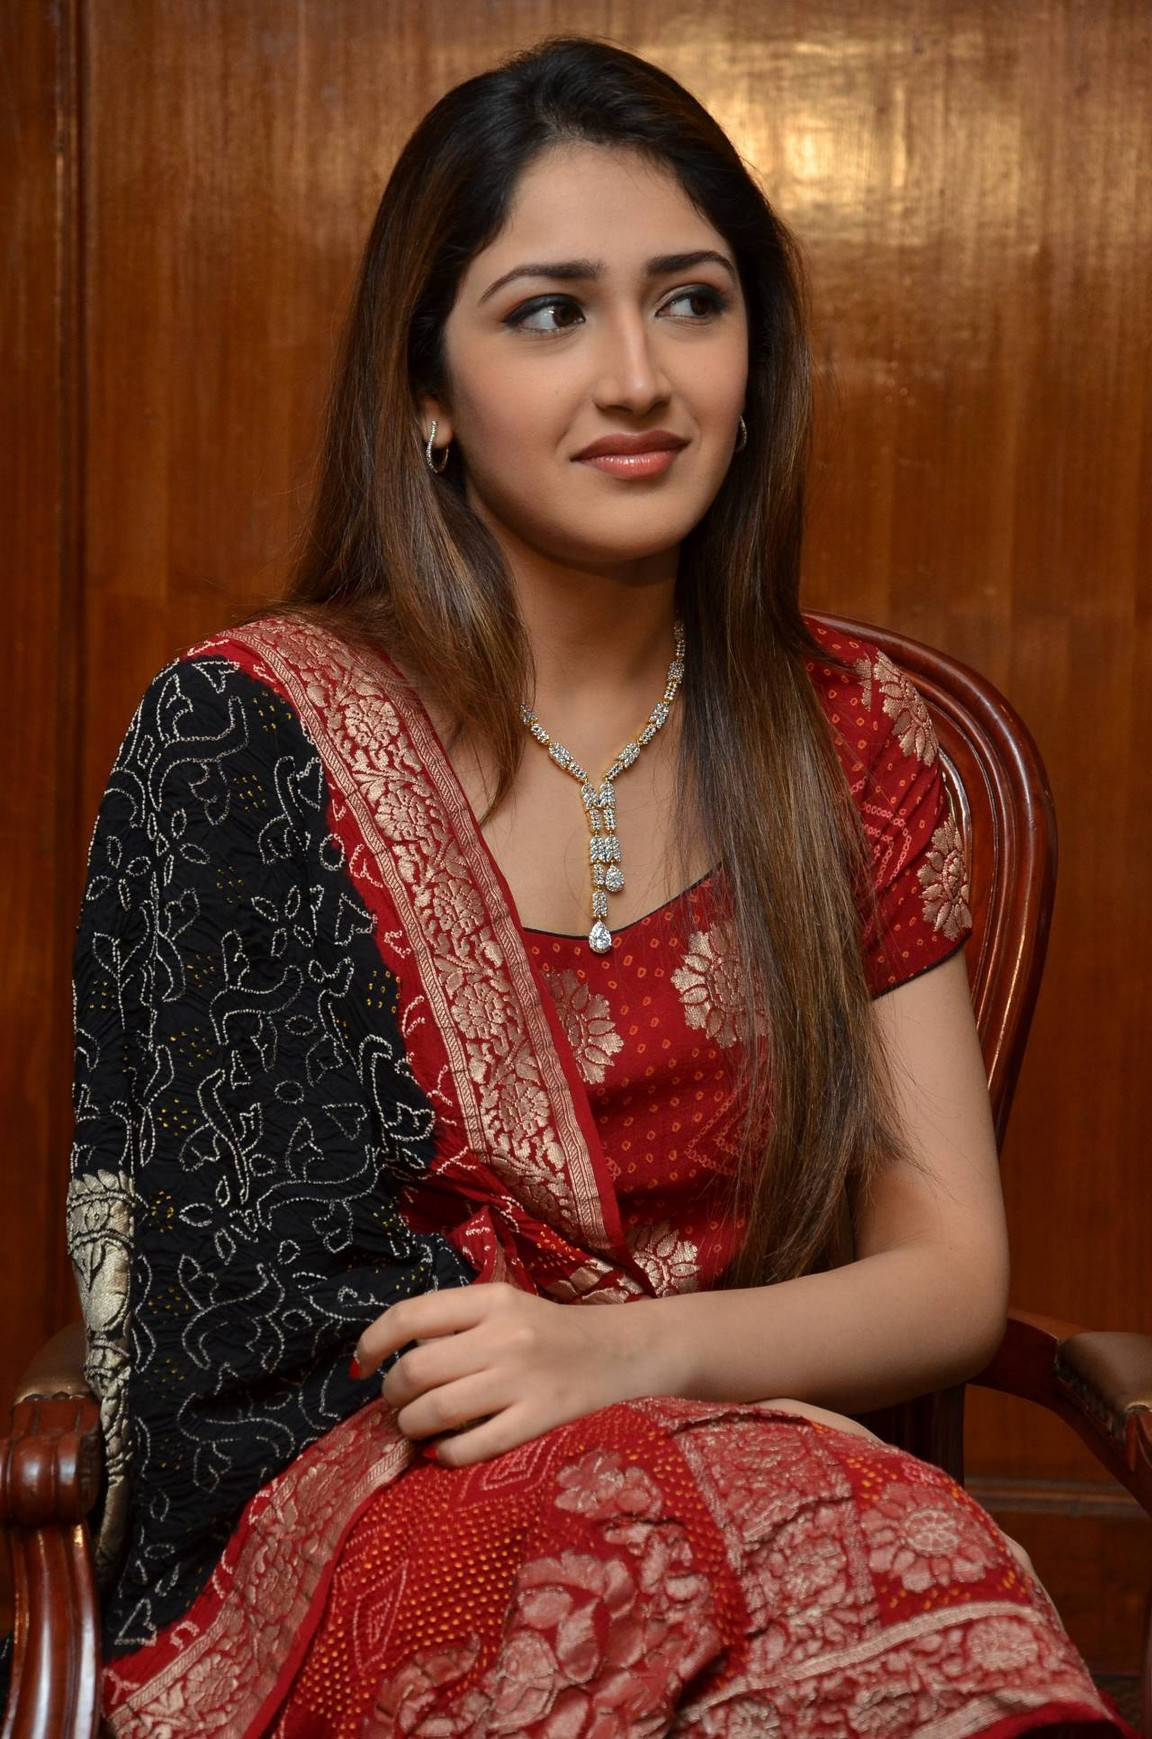 Sayesha Saigal hot photos in saree